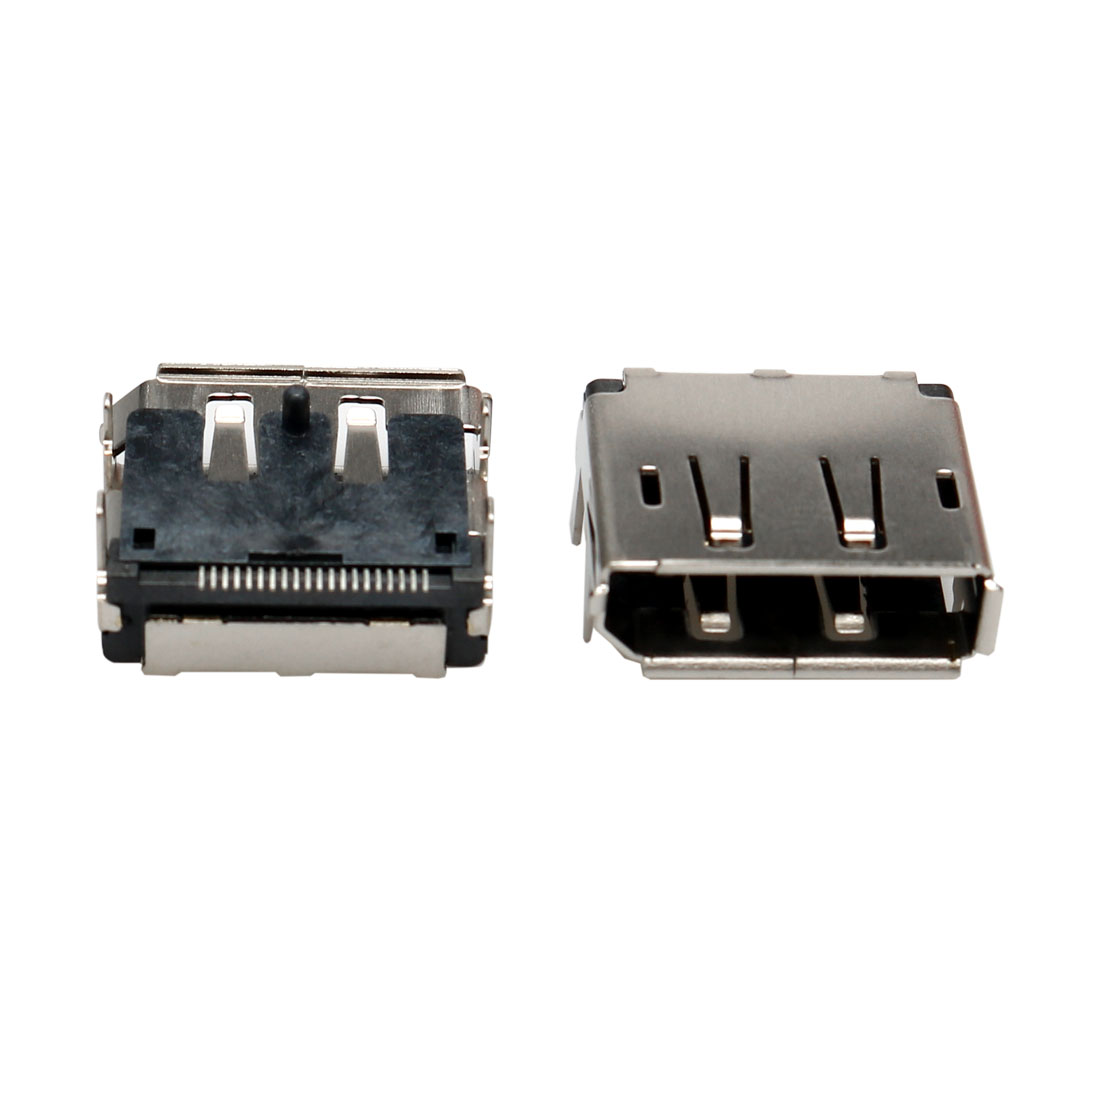 Single Port DisplayPort DP 20Pin Female Jack Socket PCB SMT Adapter 2 Pcs